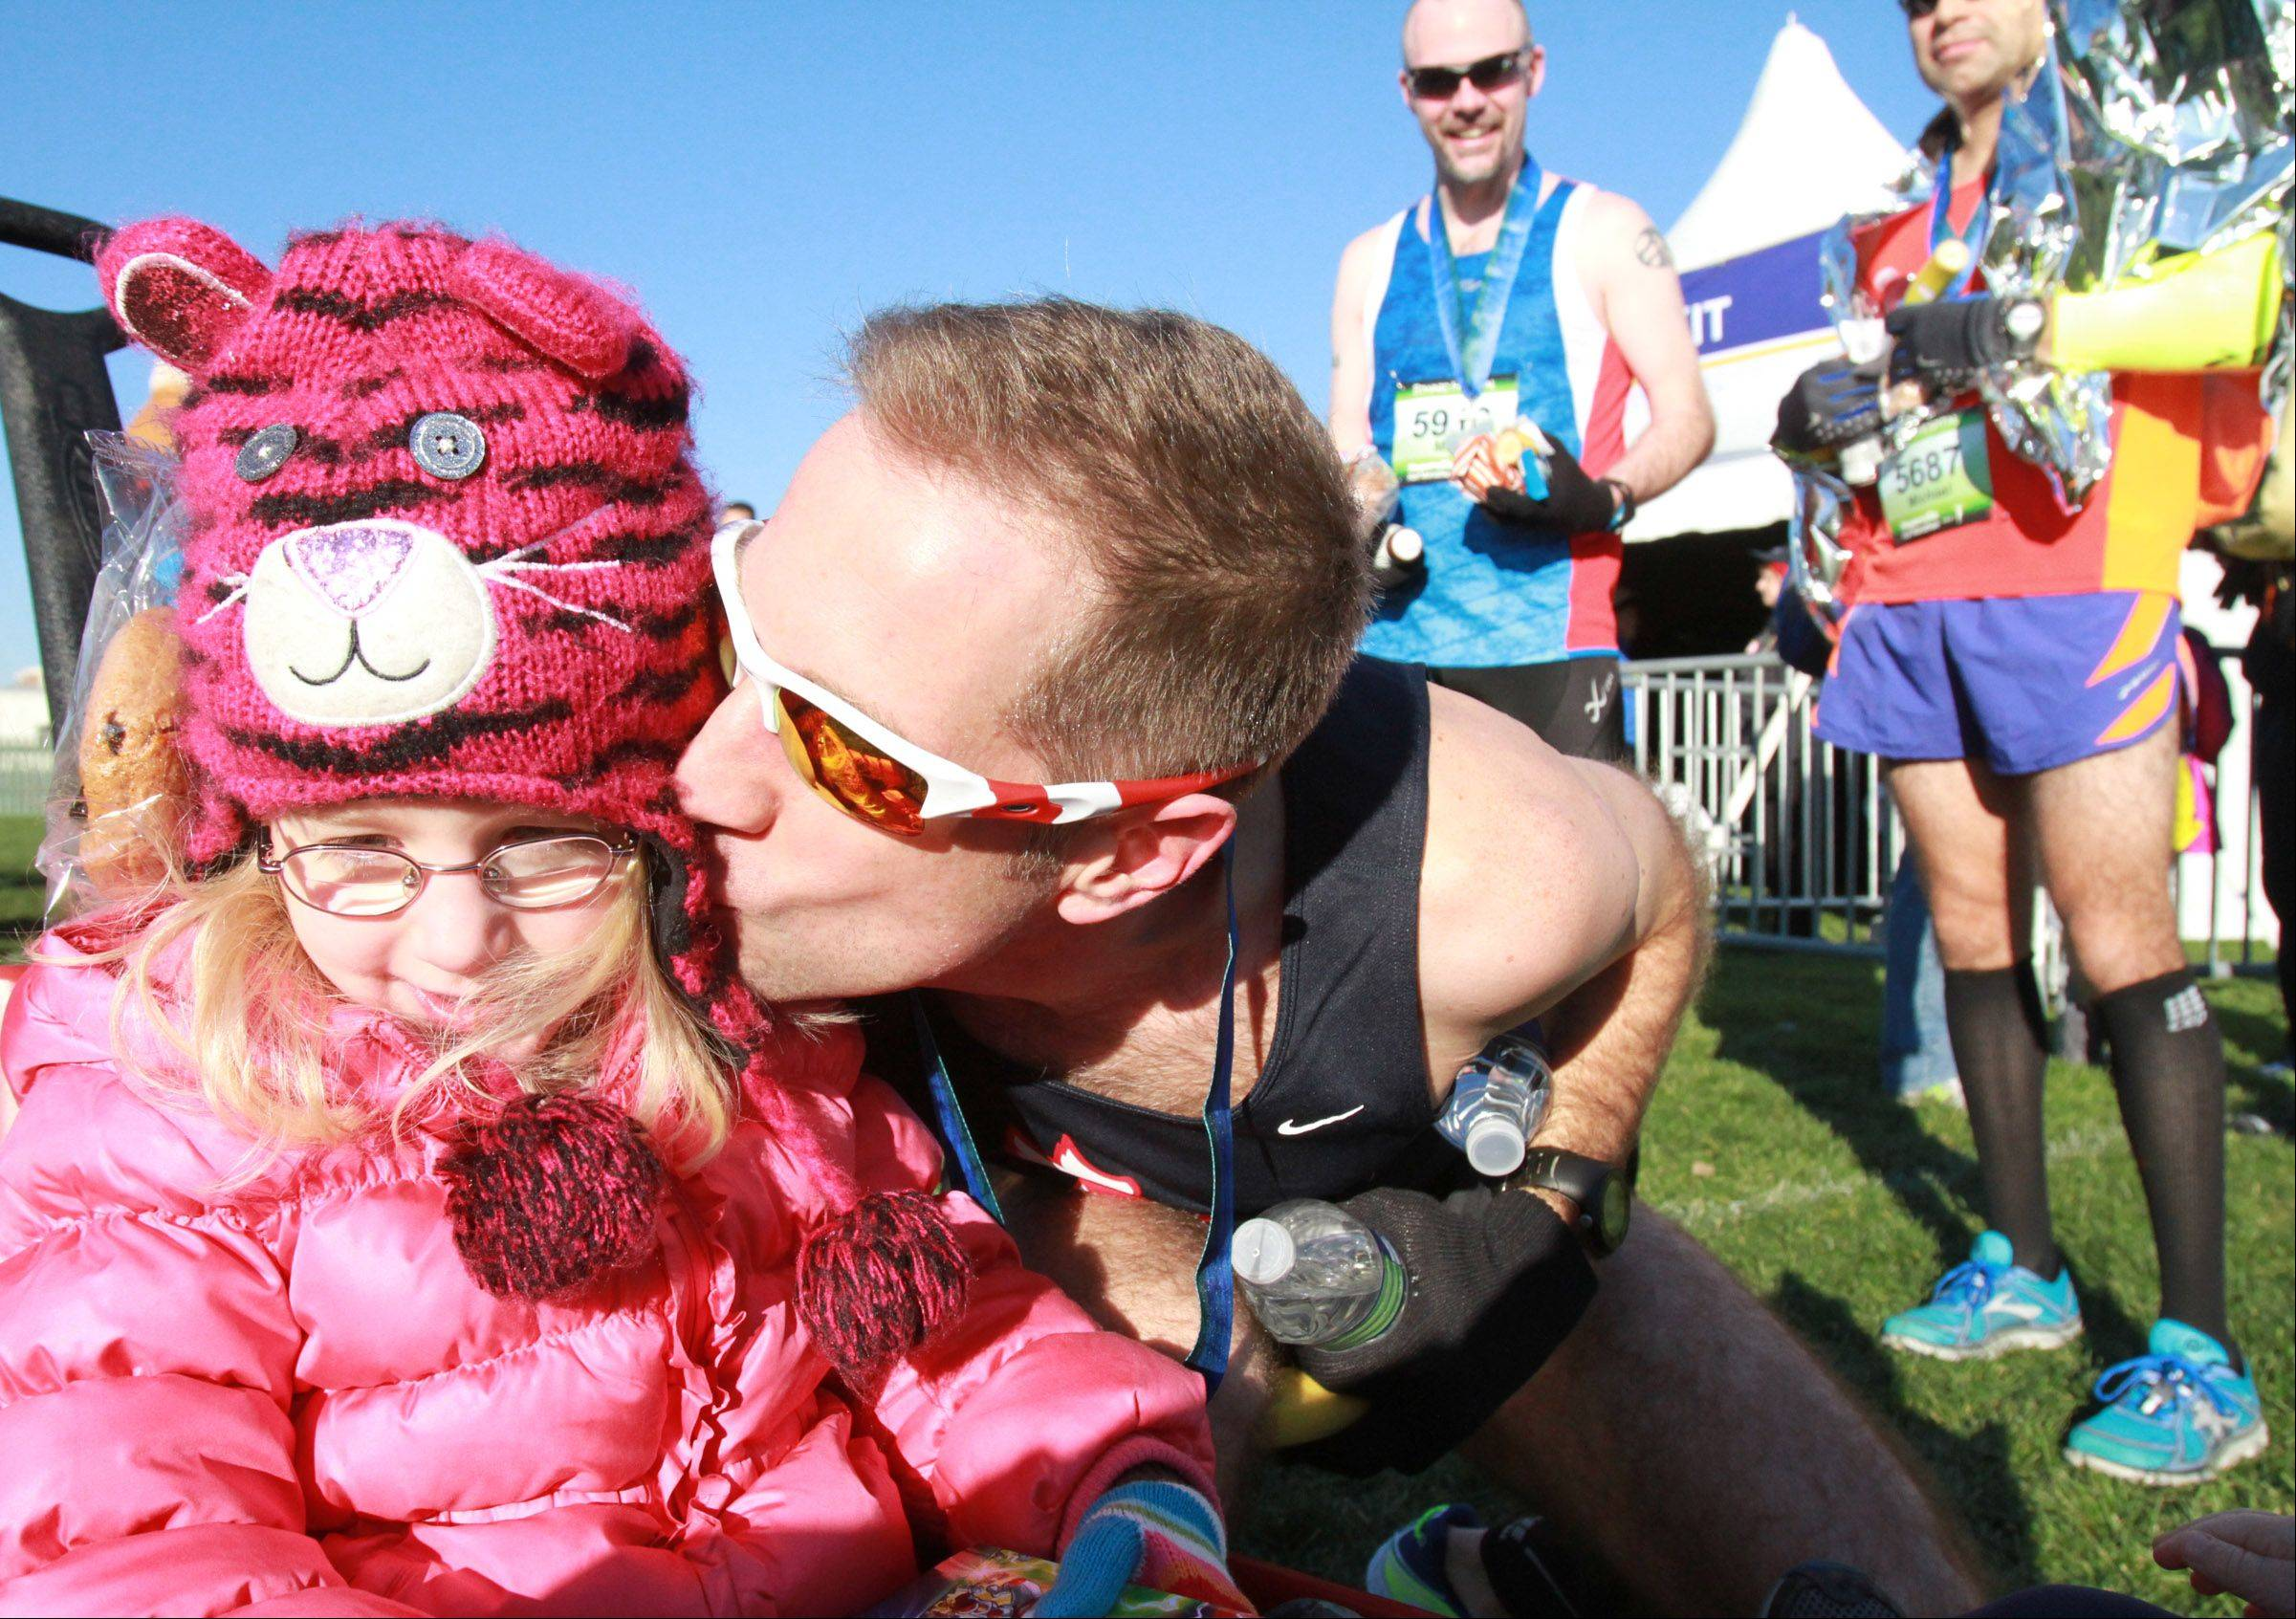 Matt Longino of Downers Grove kisses his four-year-old daughter, Brooke, after Matt competed the Edward Hospital Naperville half marathon on Sunday, November 10, 2013.